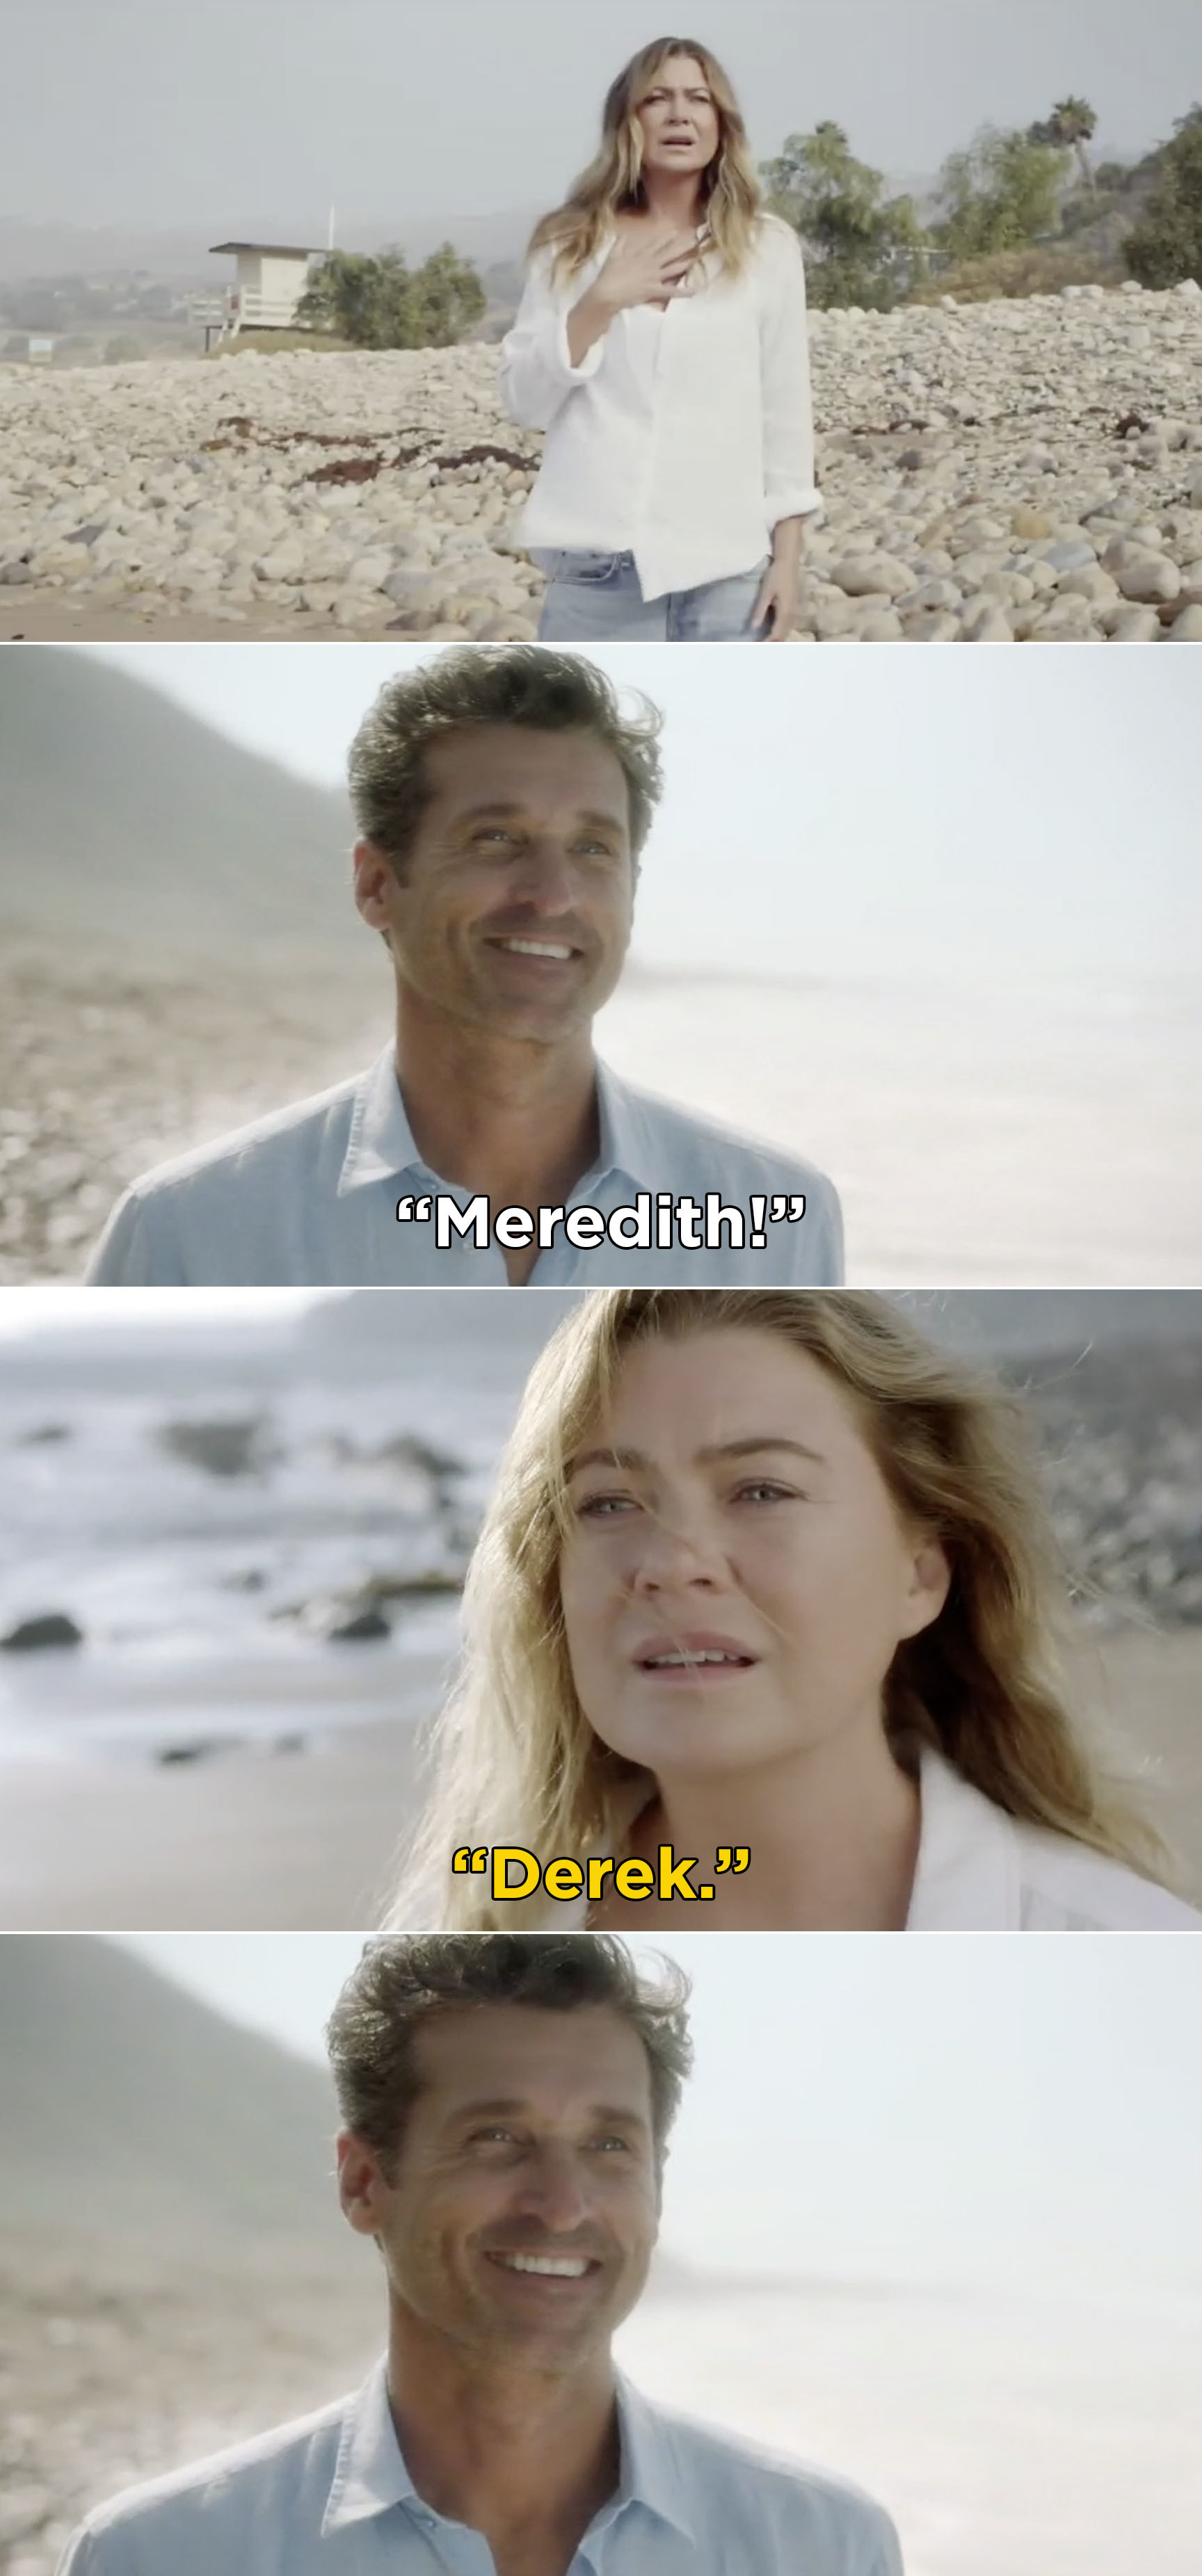 Meredith turning around on a beach and spotting Derek, and Derek saying her name and smiling